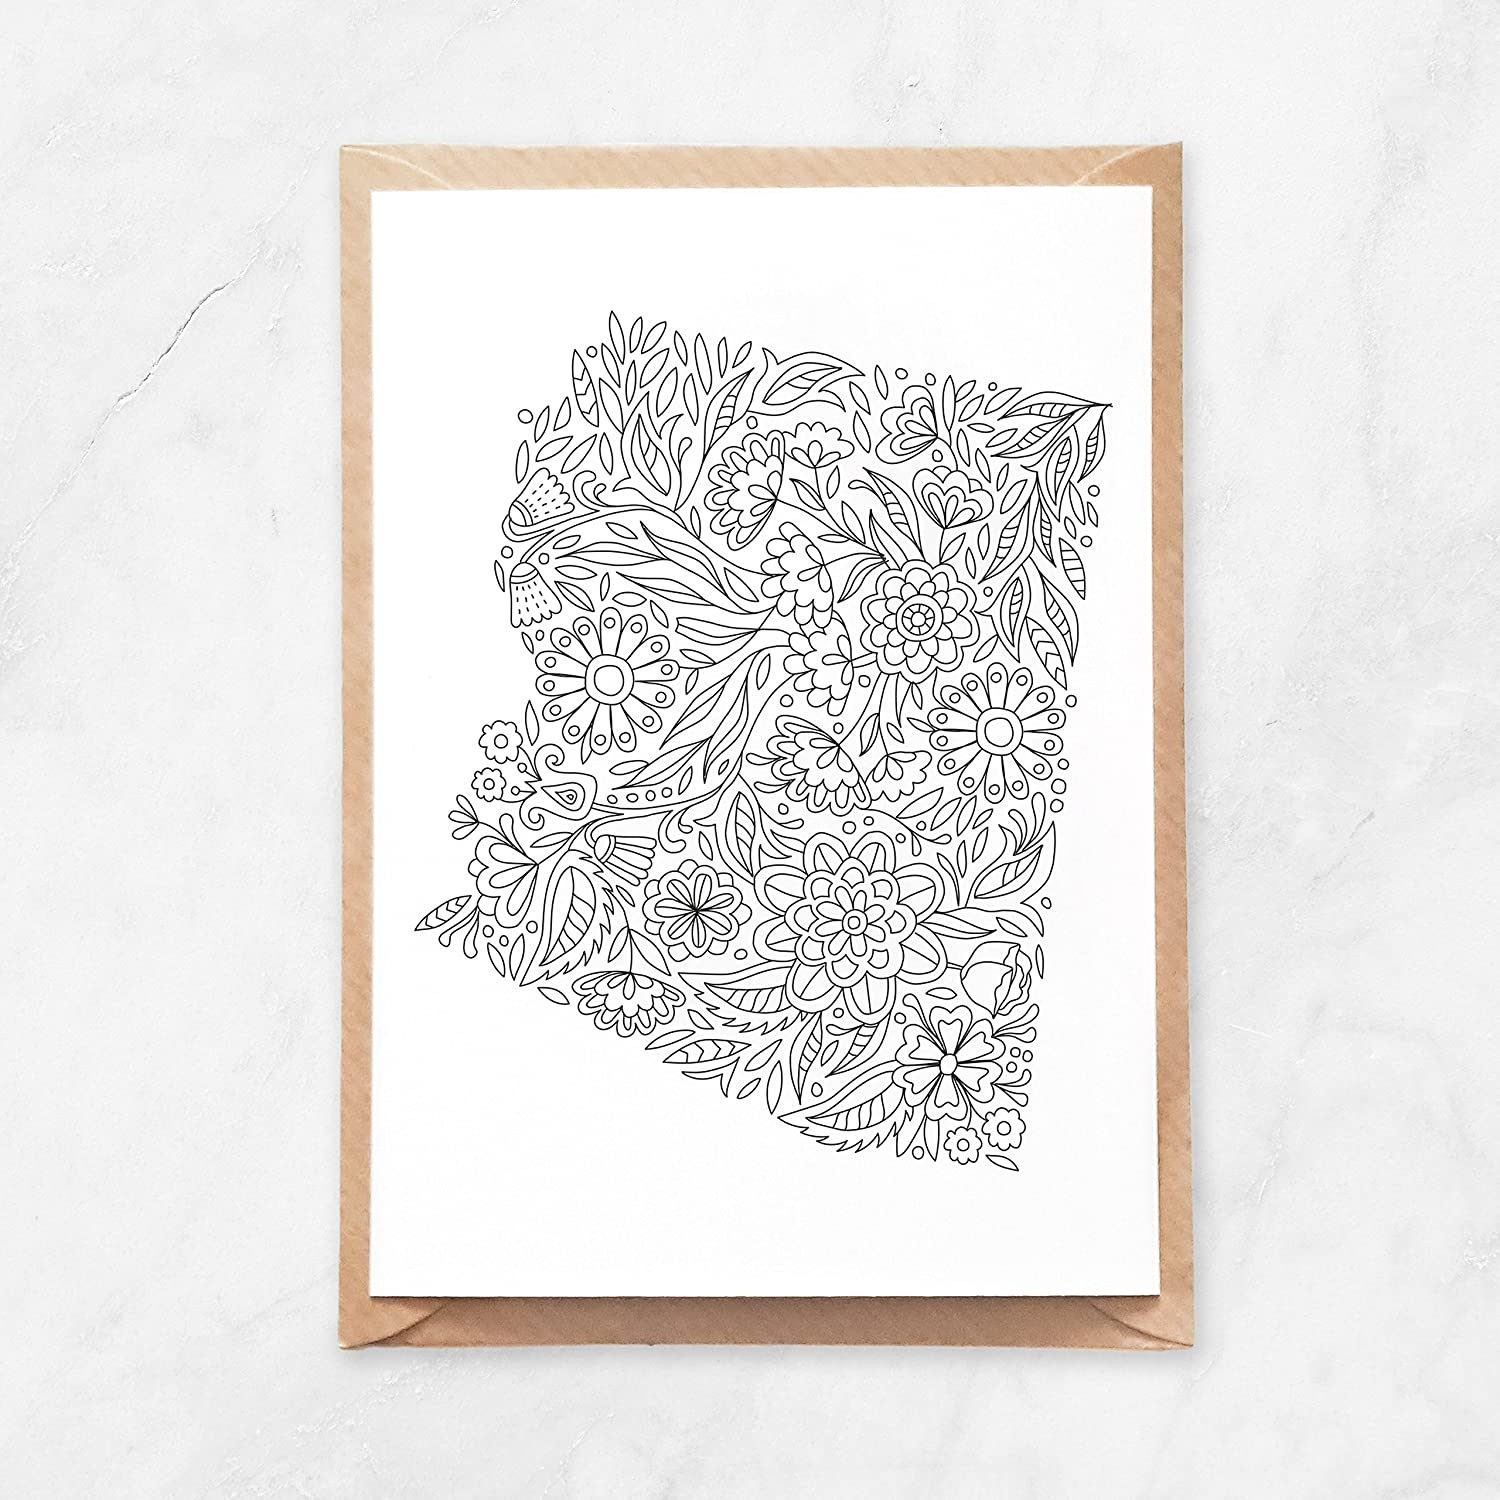 5pcs, Adult Coloring Arizona Postcard, US State Map Postcard Set, Grand Canyon Natural Landmark Note Card, Floral Map of United States USA, A6